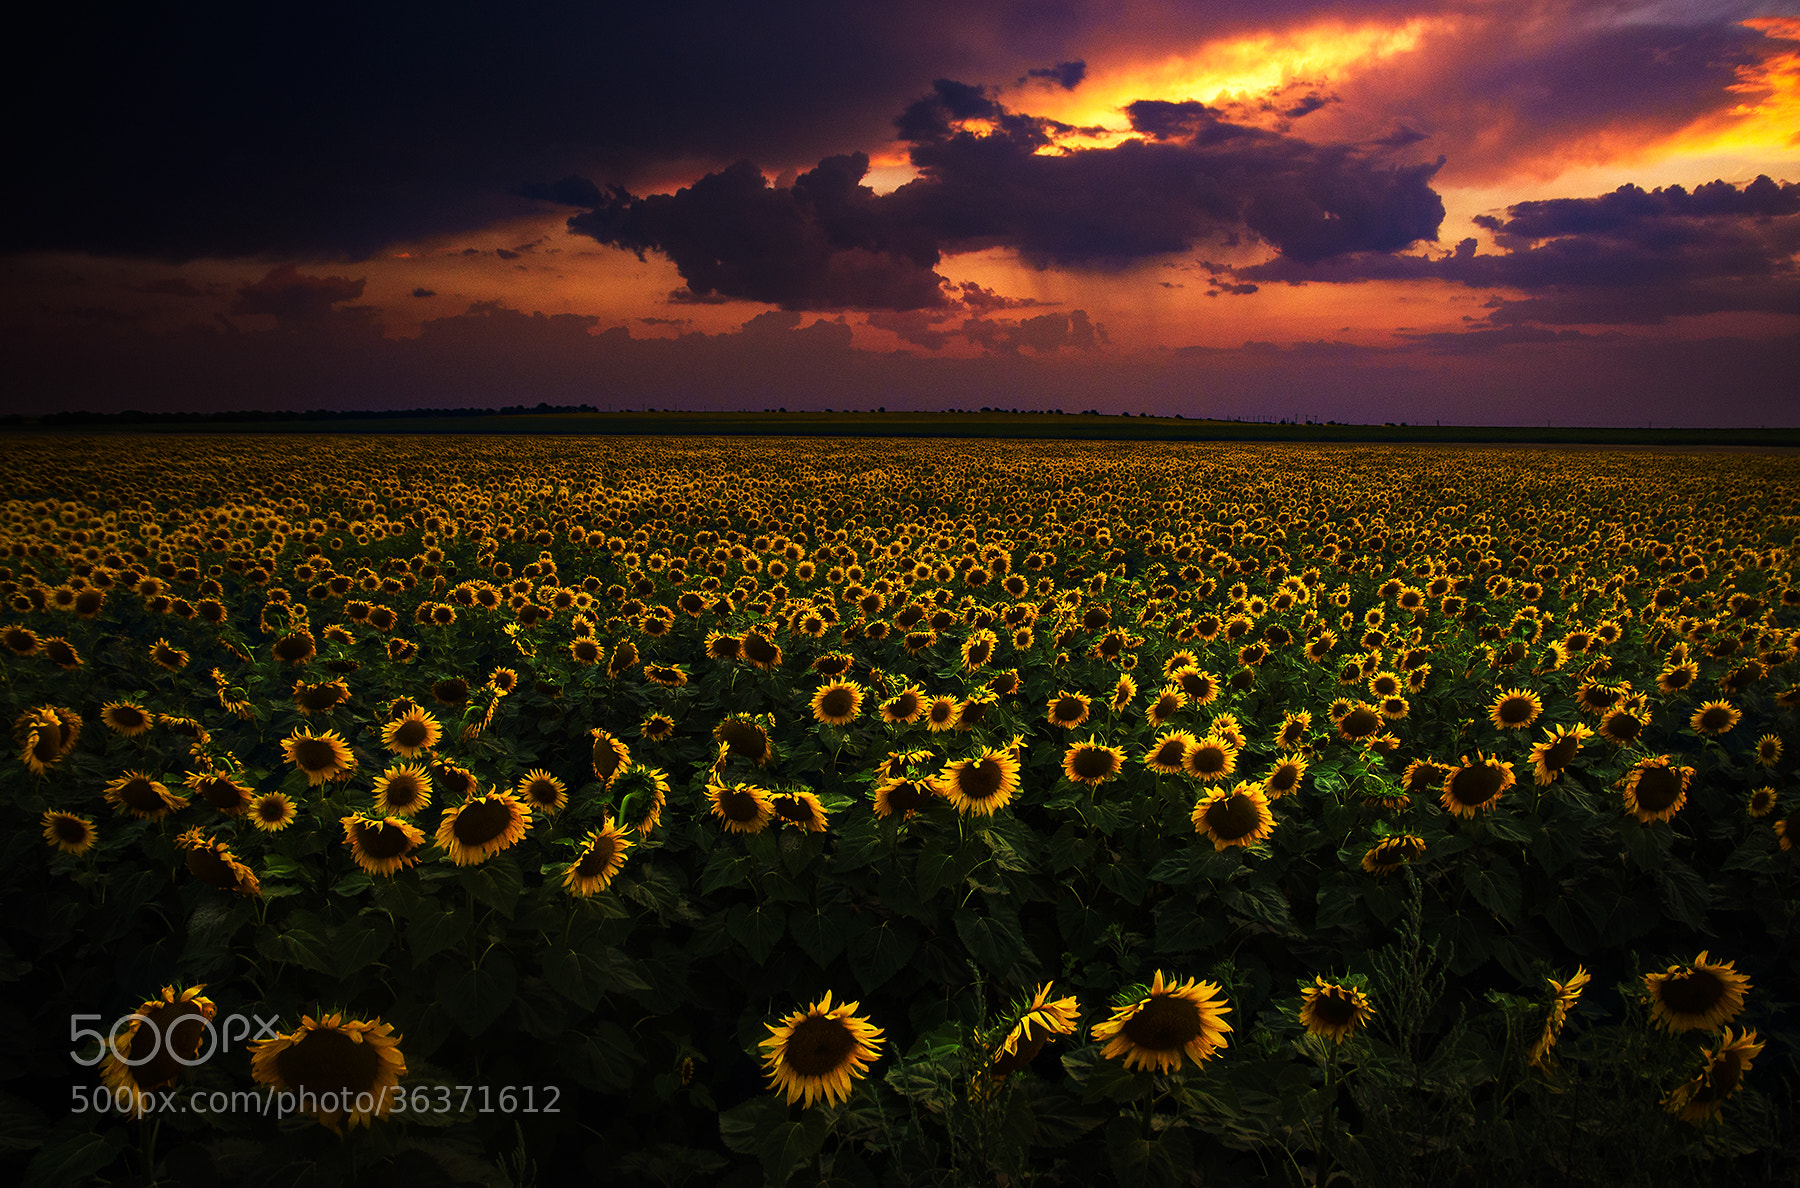 Photograph Sunflower field by Cristi Jora on 500px